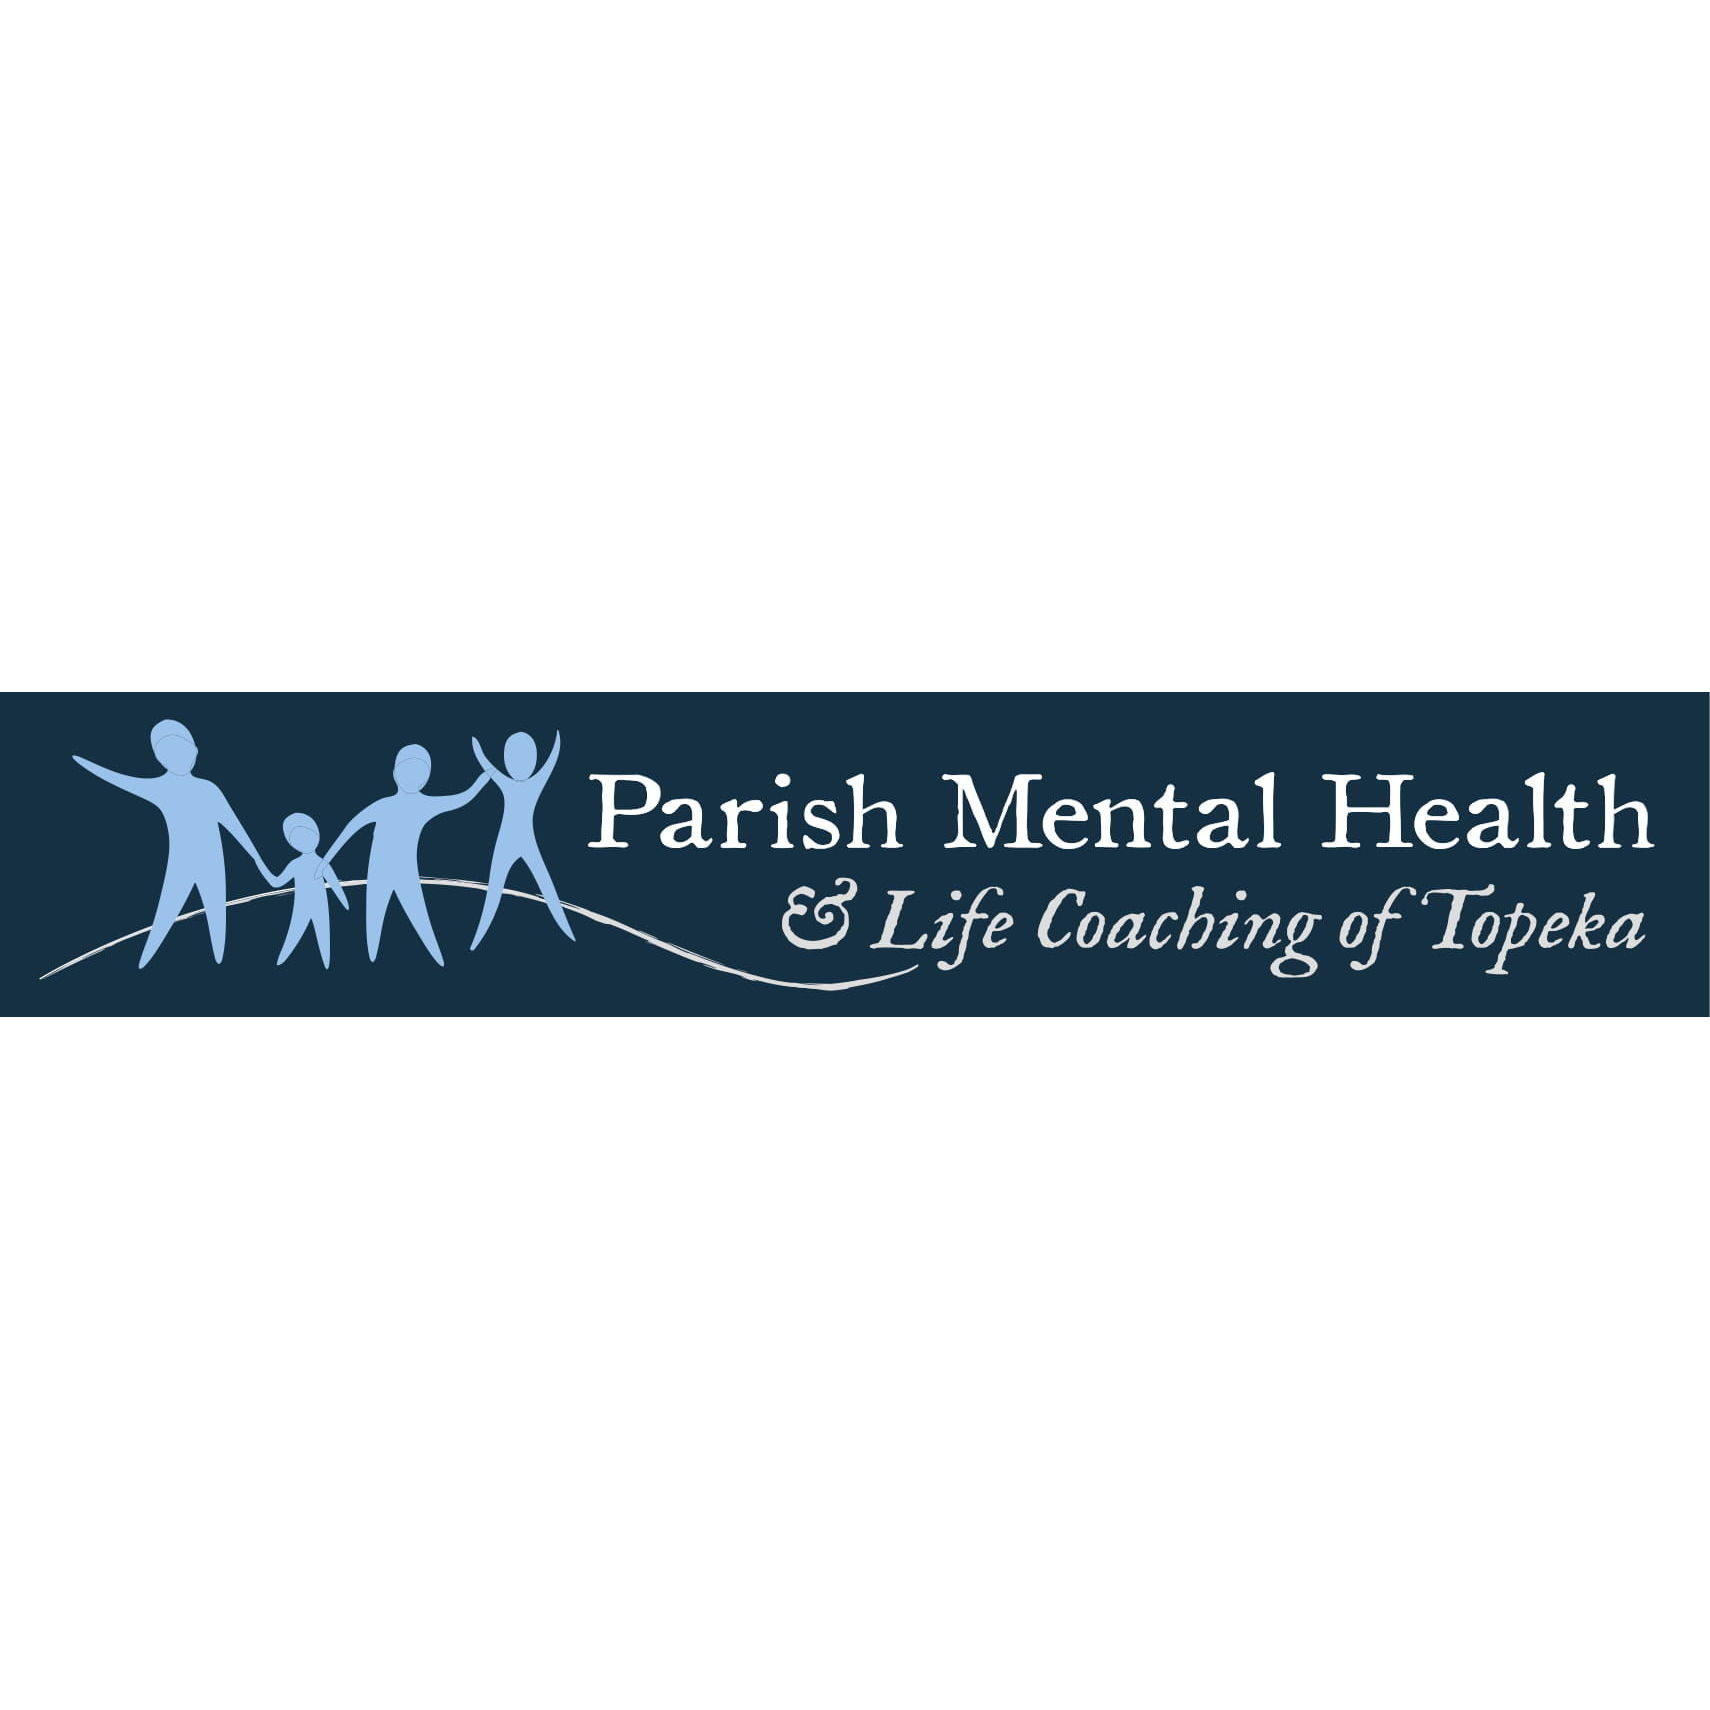 Parish Mental Health & Life Coaching of Topeka - Topeka, KS - Psychotherapy